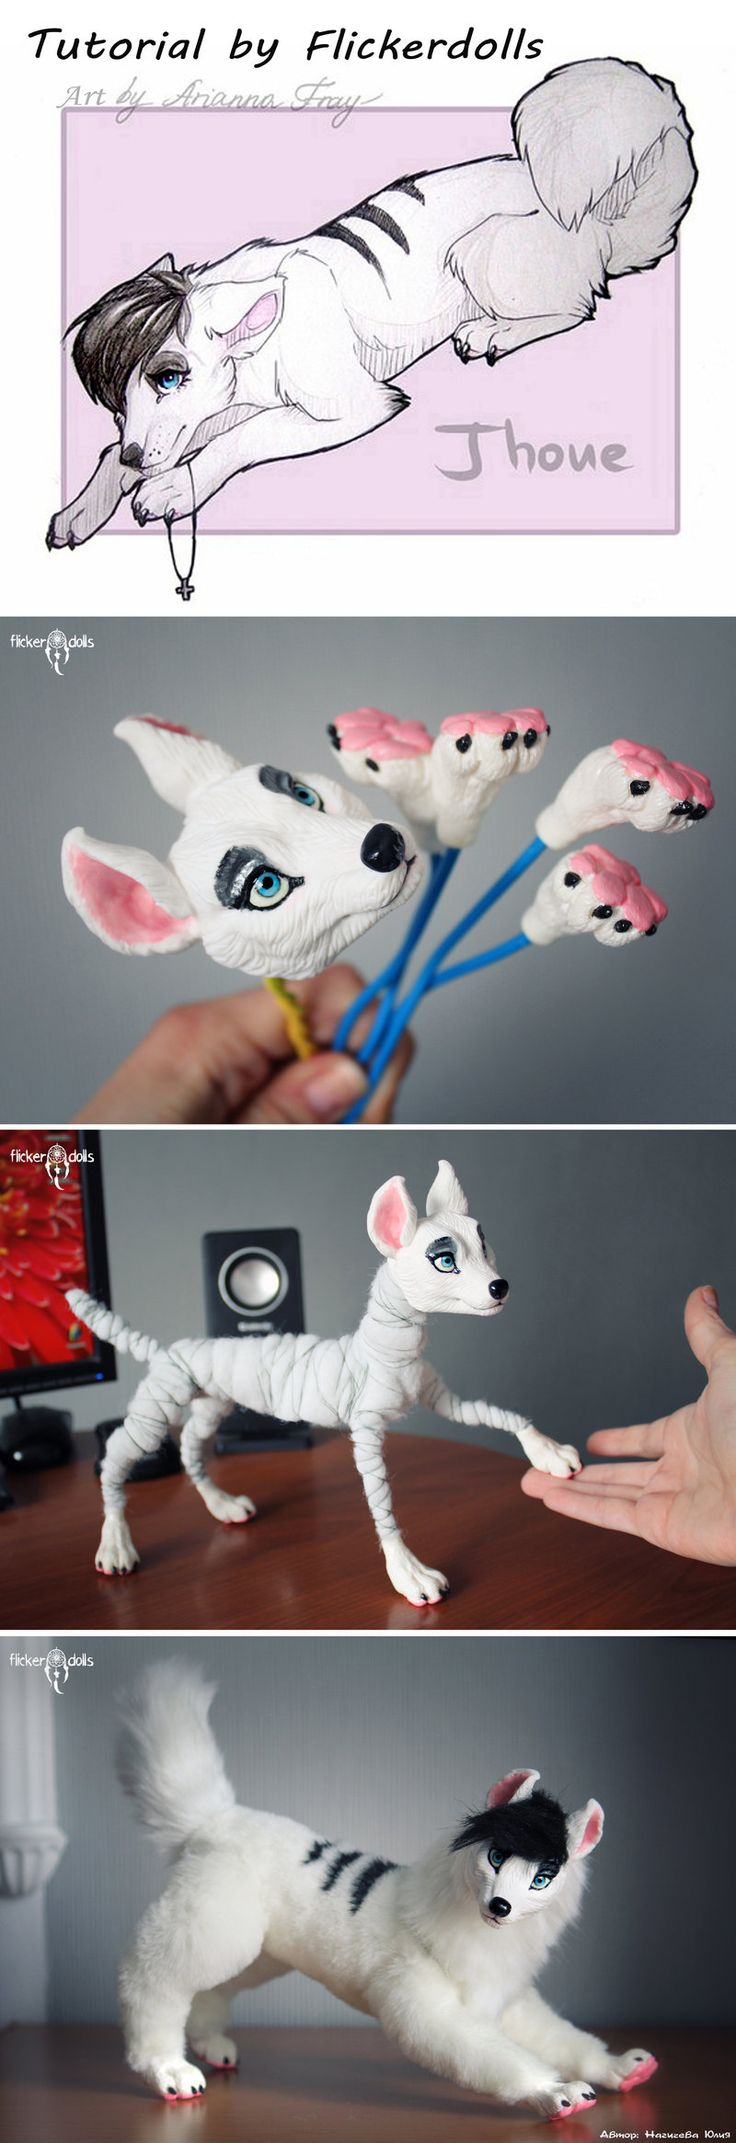 Tutorial - creating a doll. Jhoue by Flicker-Dolls.deviantart.com on @DeviantArt